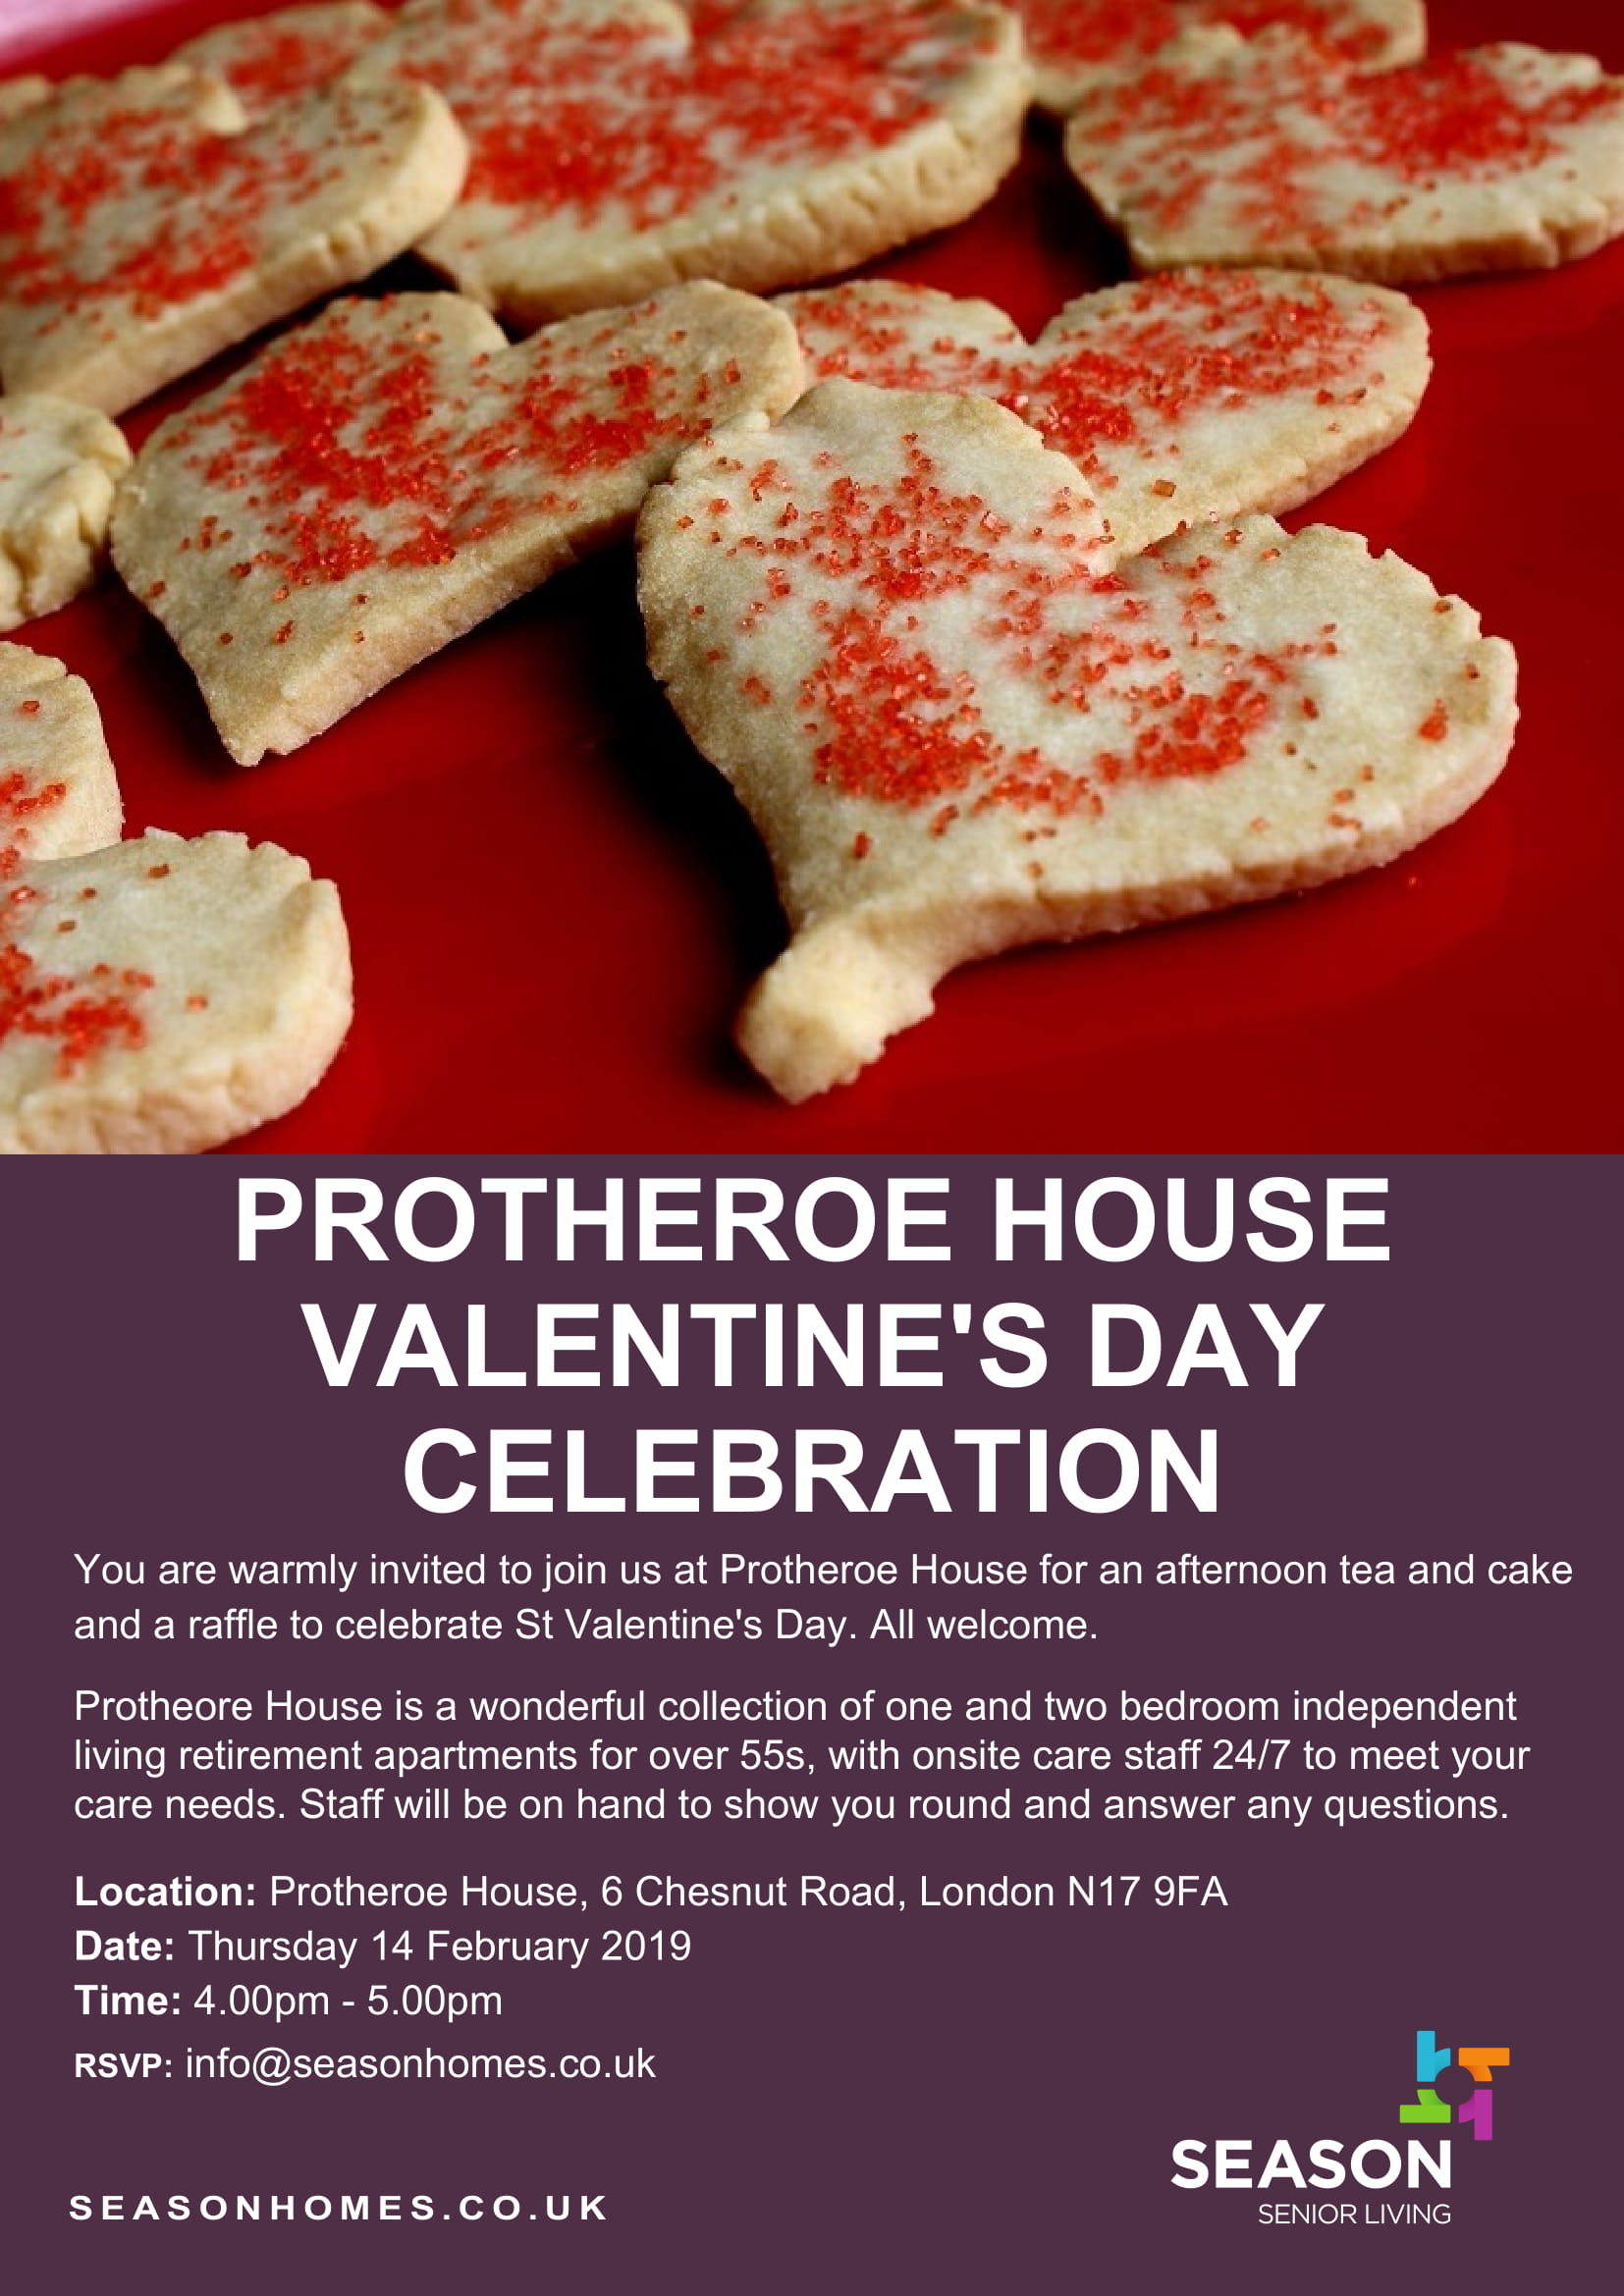 Protheroe House - Valentine's Day celebration